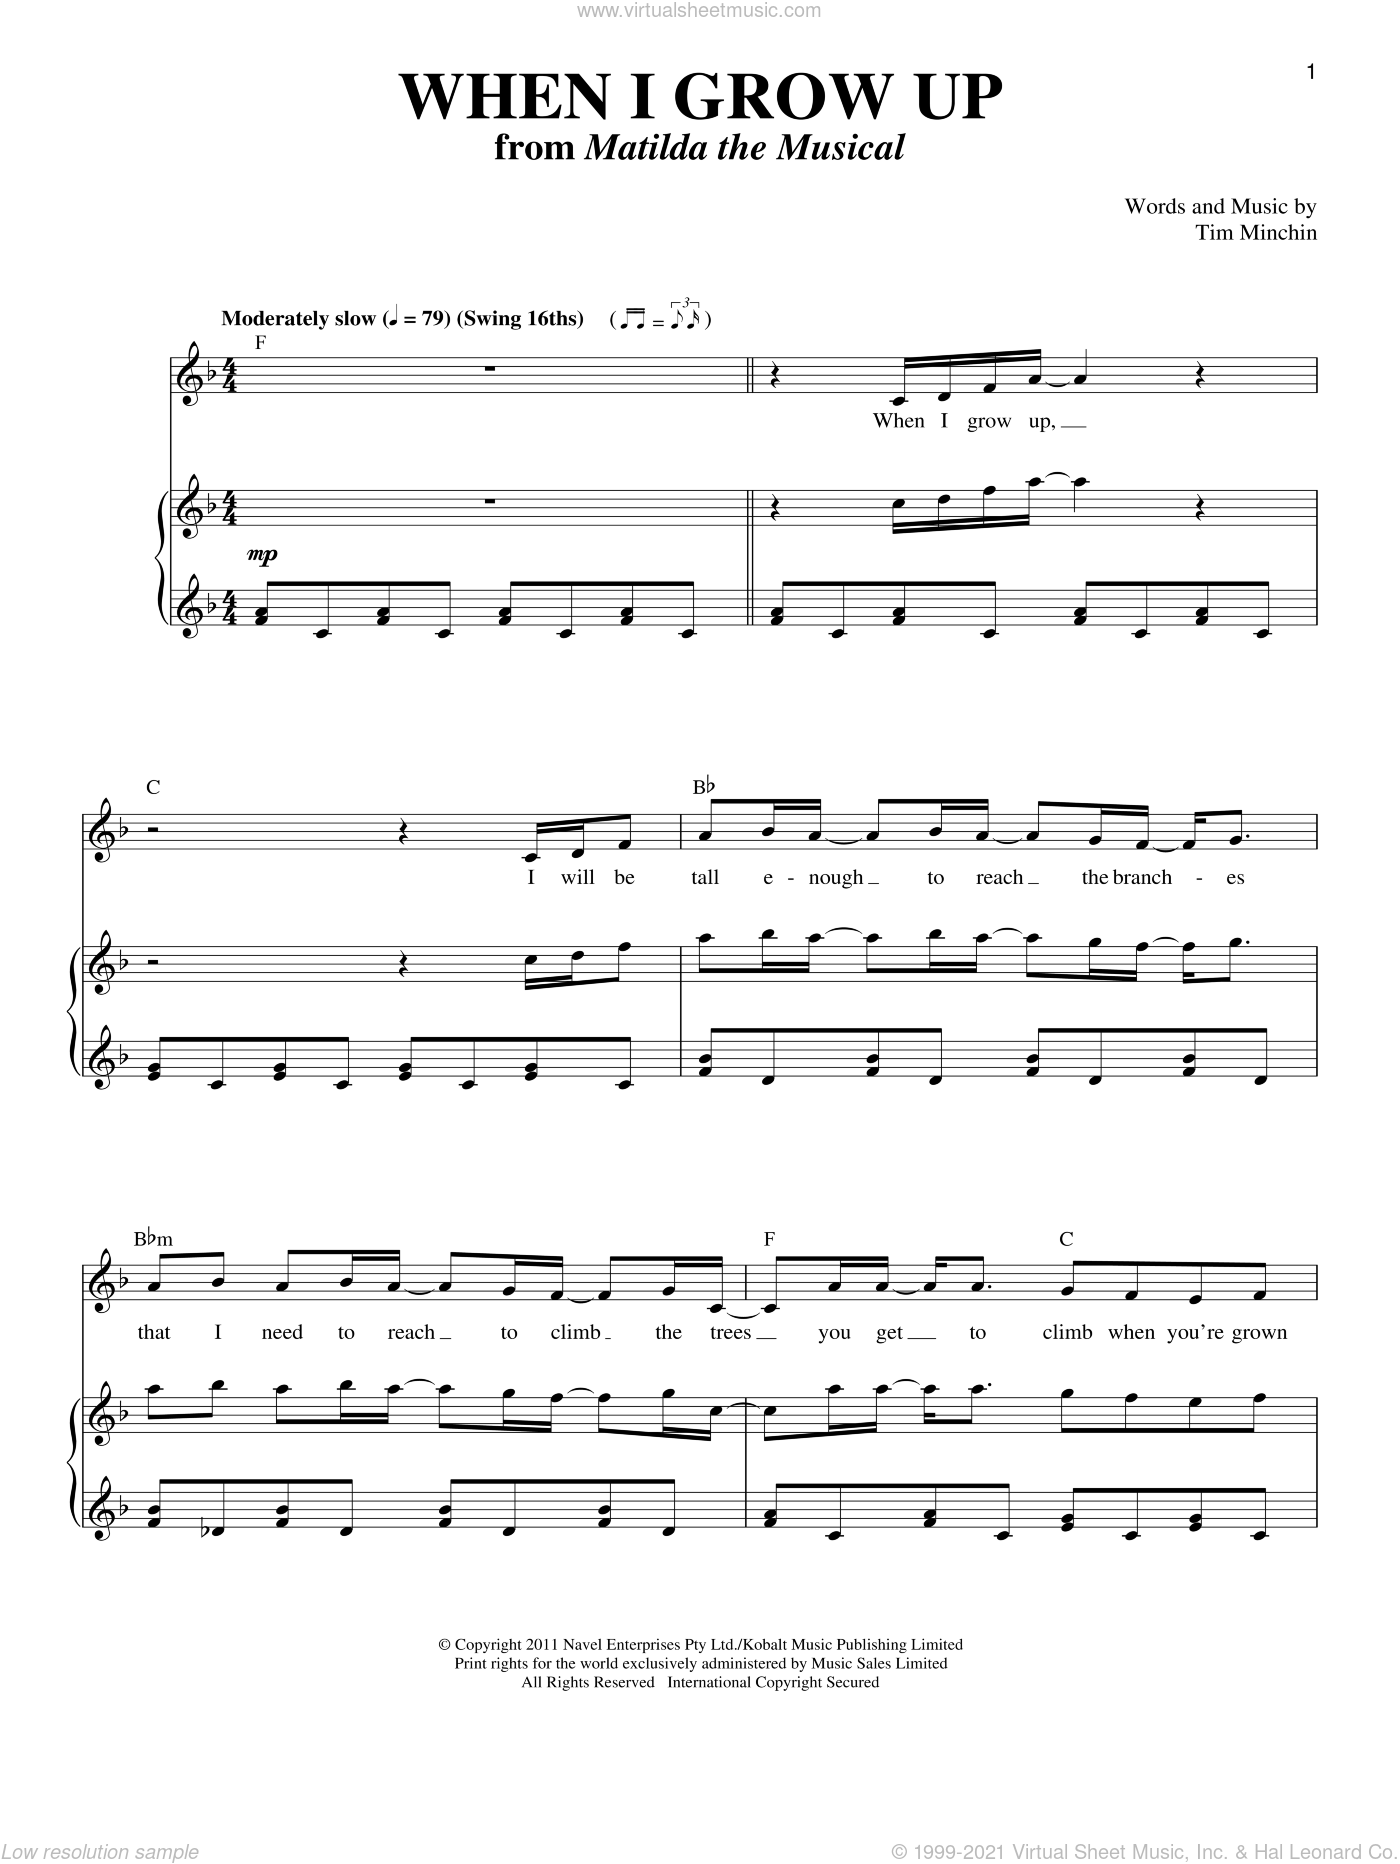 When I Grow Up sheet music for voice and piano by Tim Minchin, intermediate